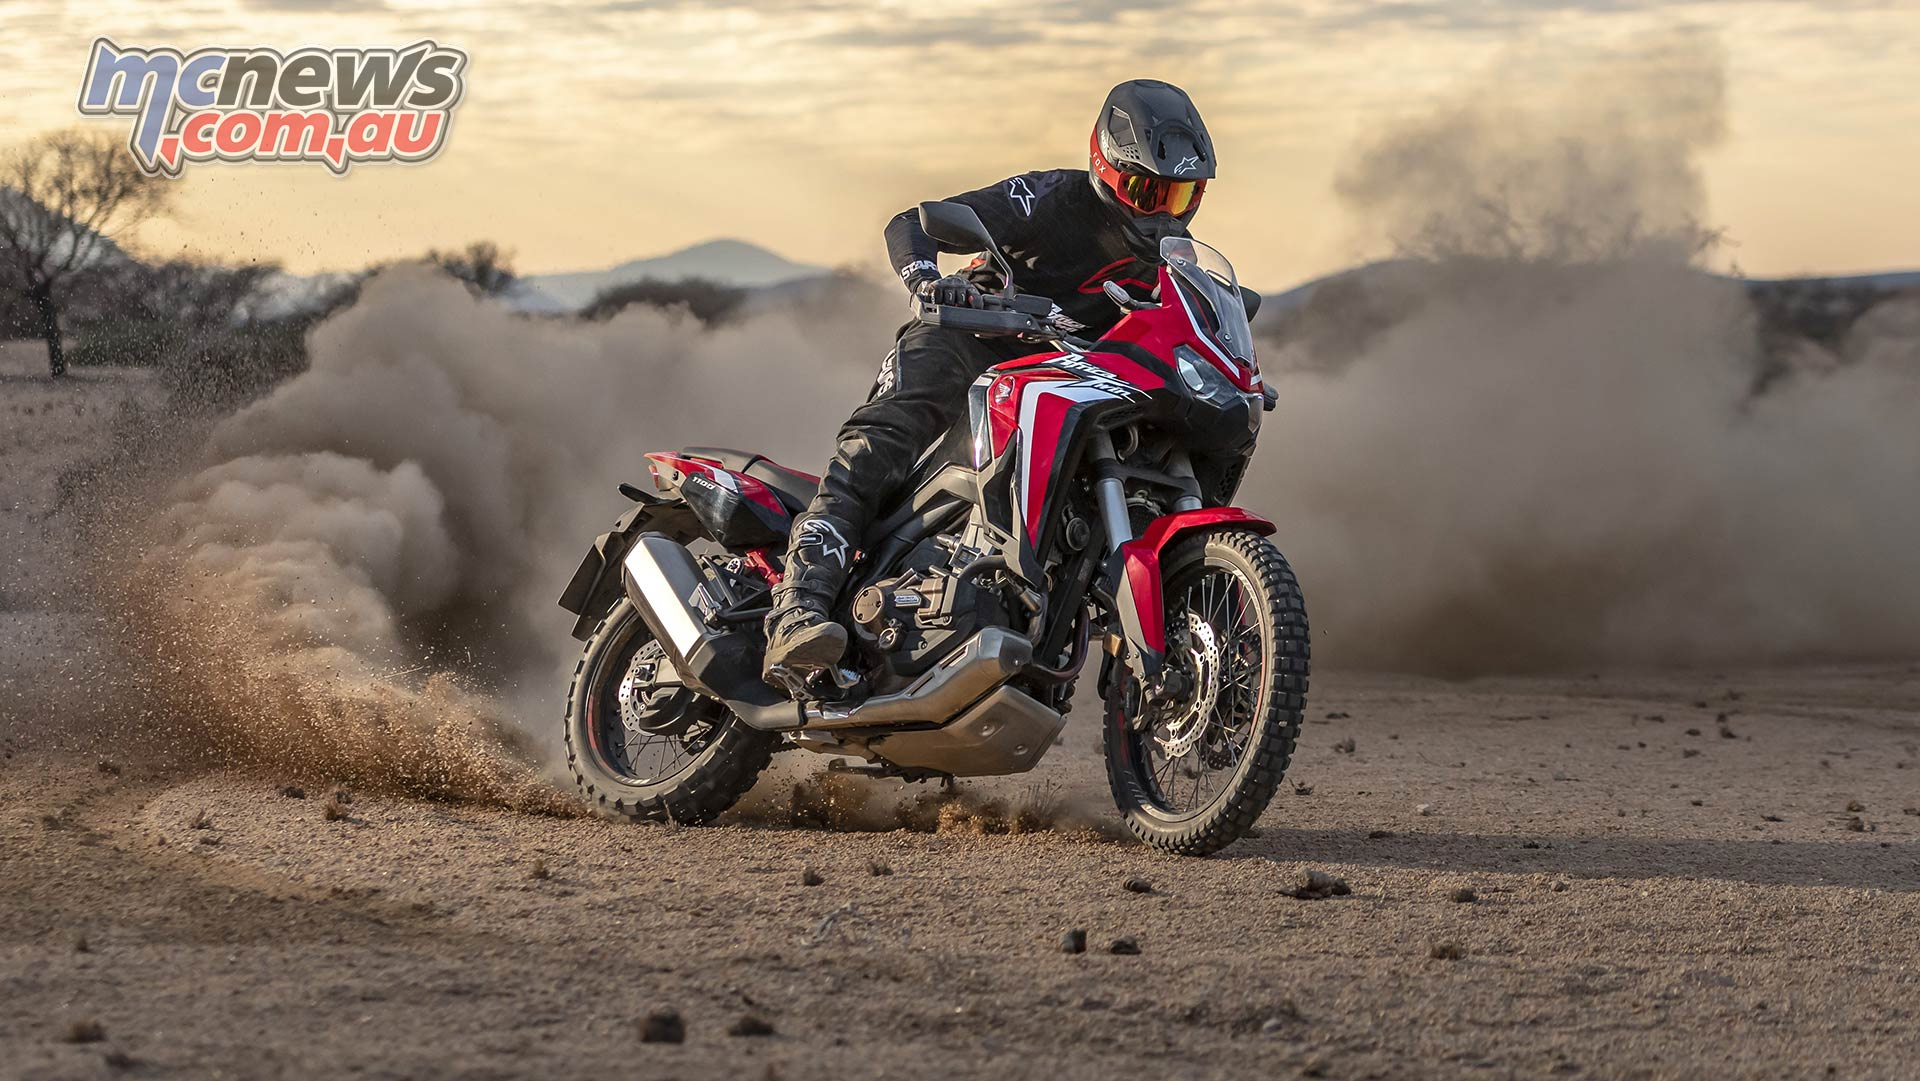 2020 Honda Africa Twin 1100 Pricing Announced Mcnewscomau